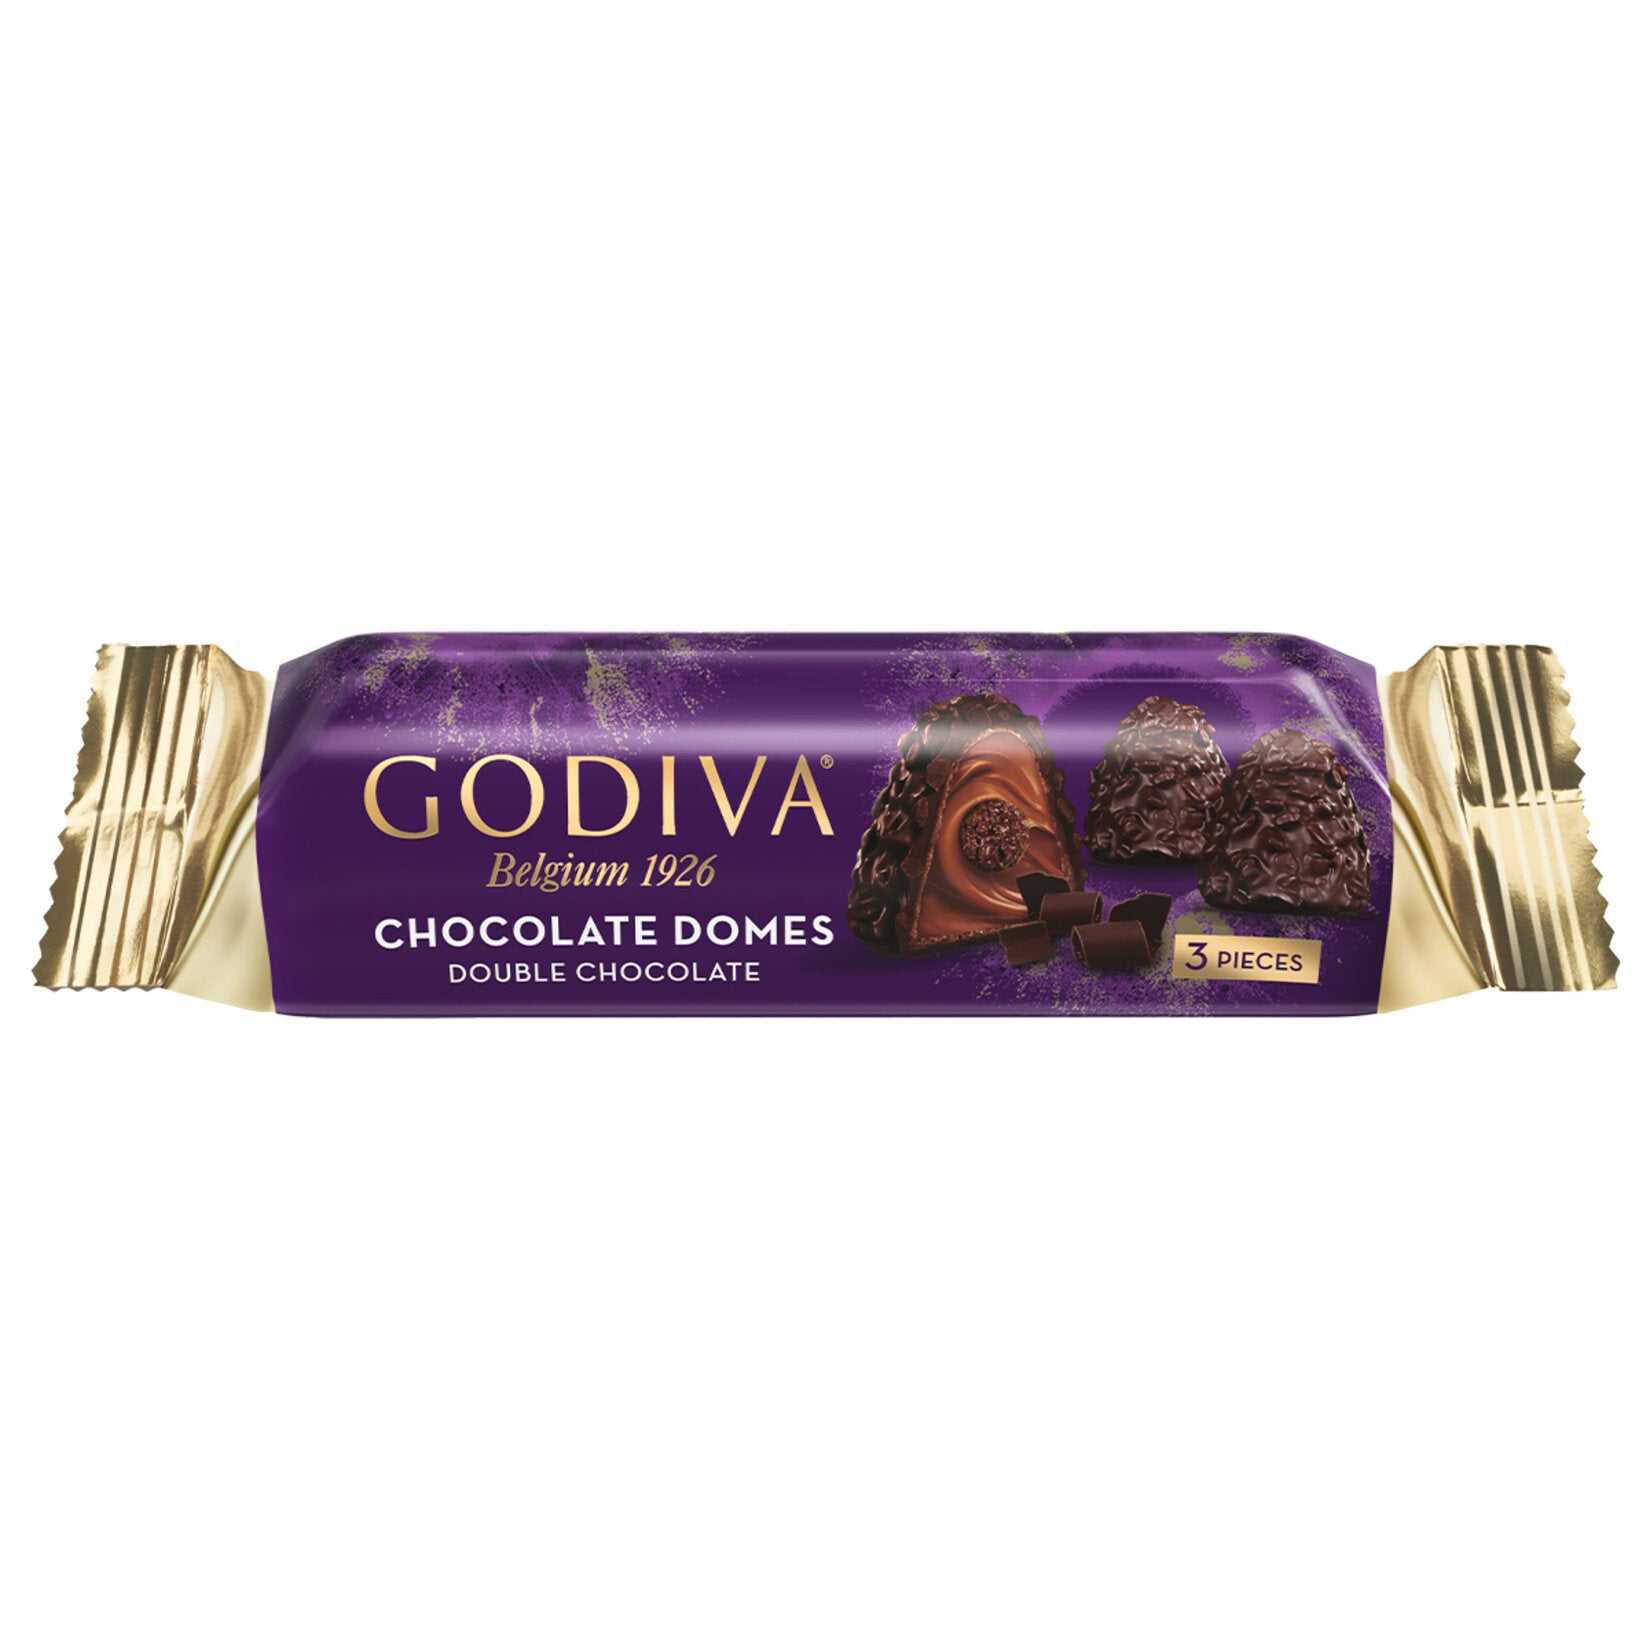 Godiva Chocolate Domes Double Chocolate, 1.1oz